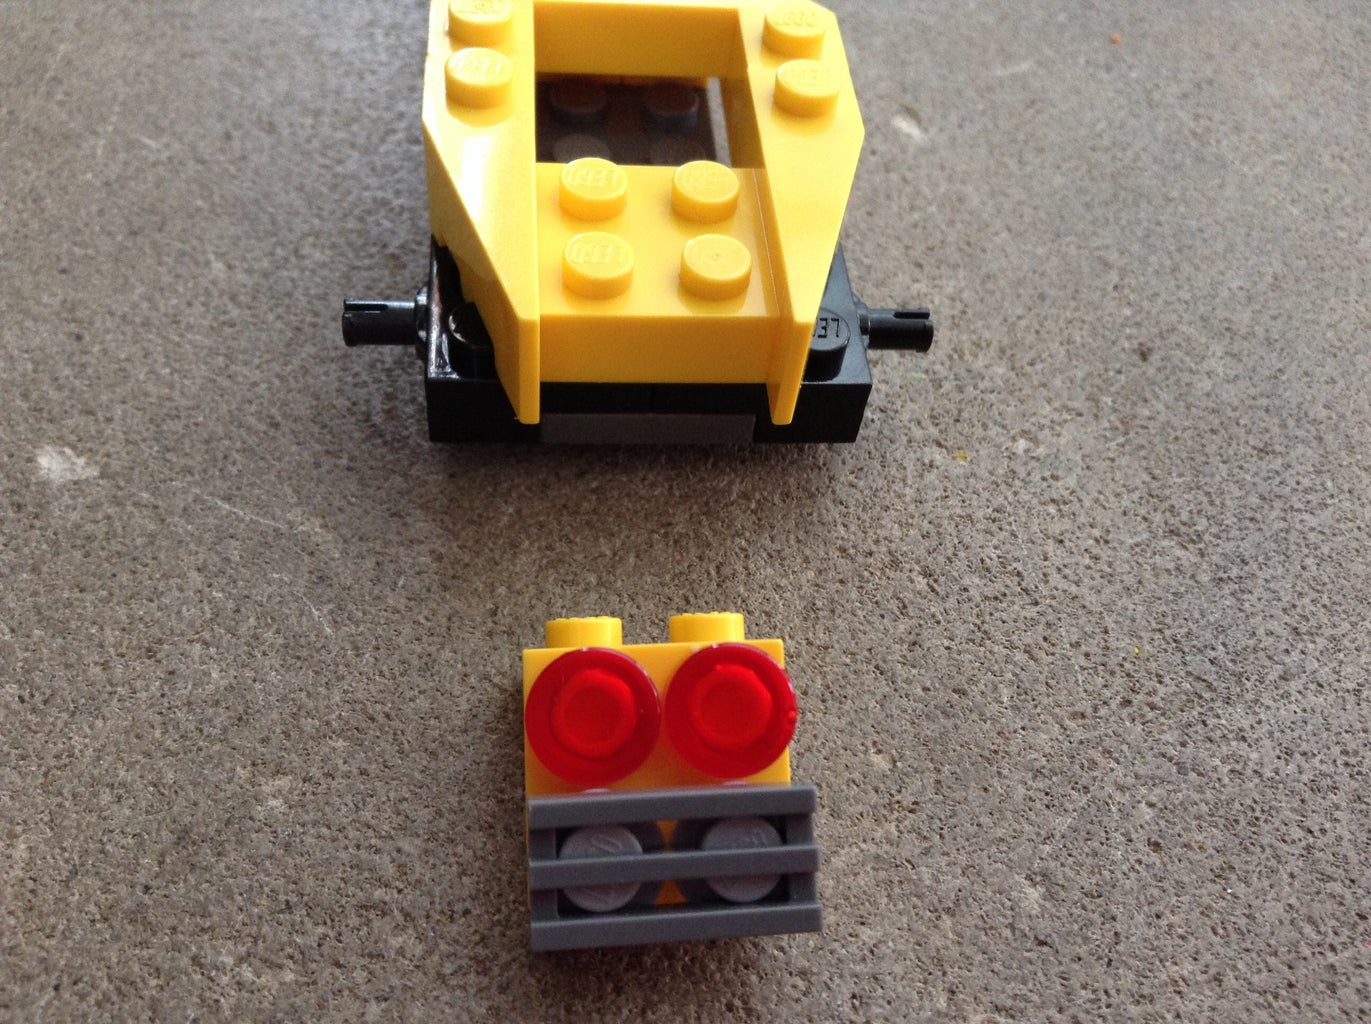 Make the Tail Light and Exhaust Unit